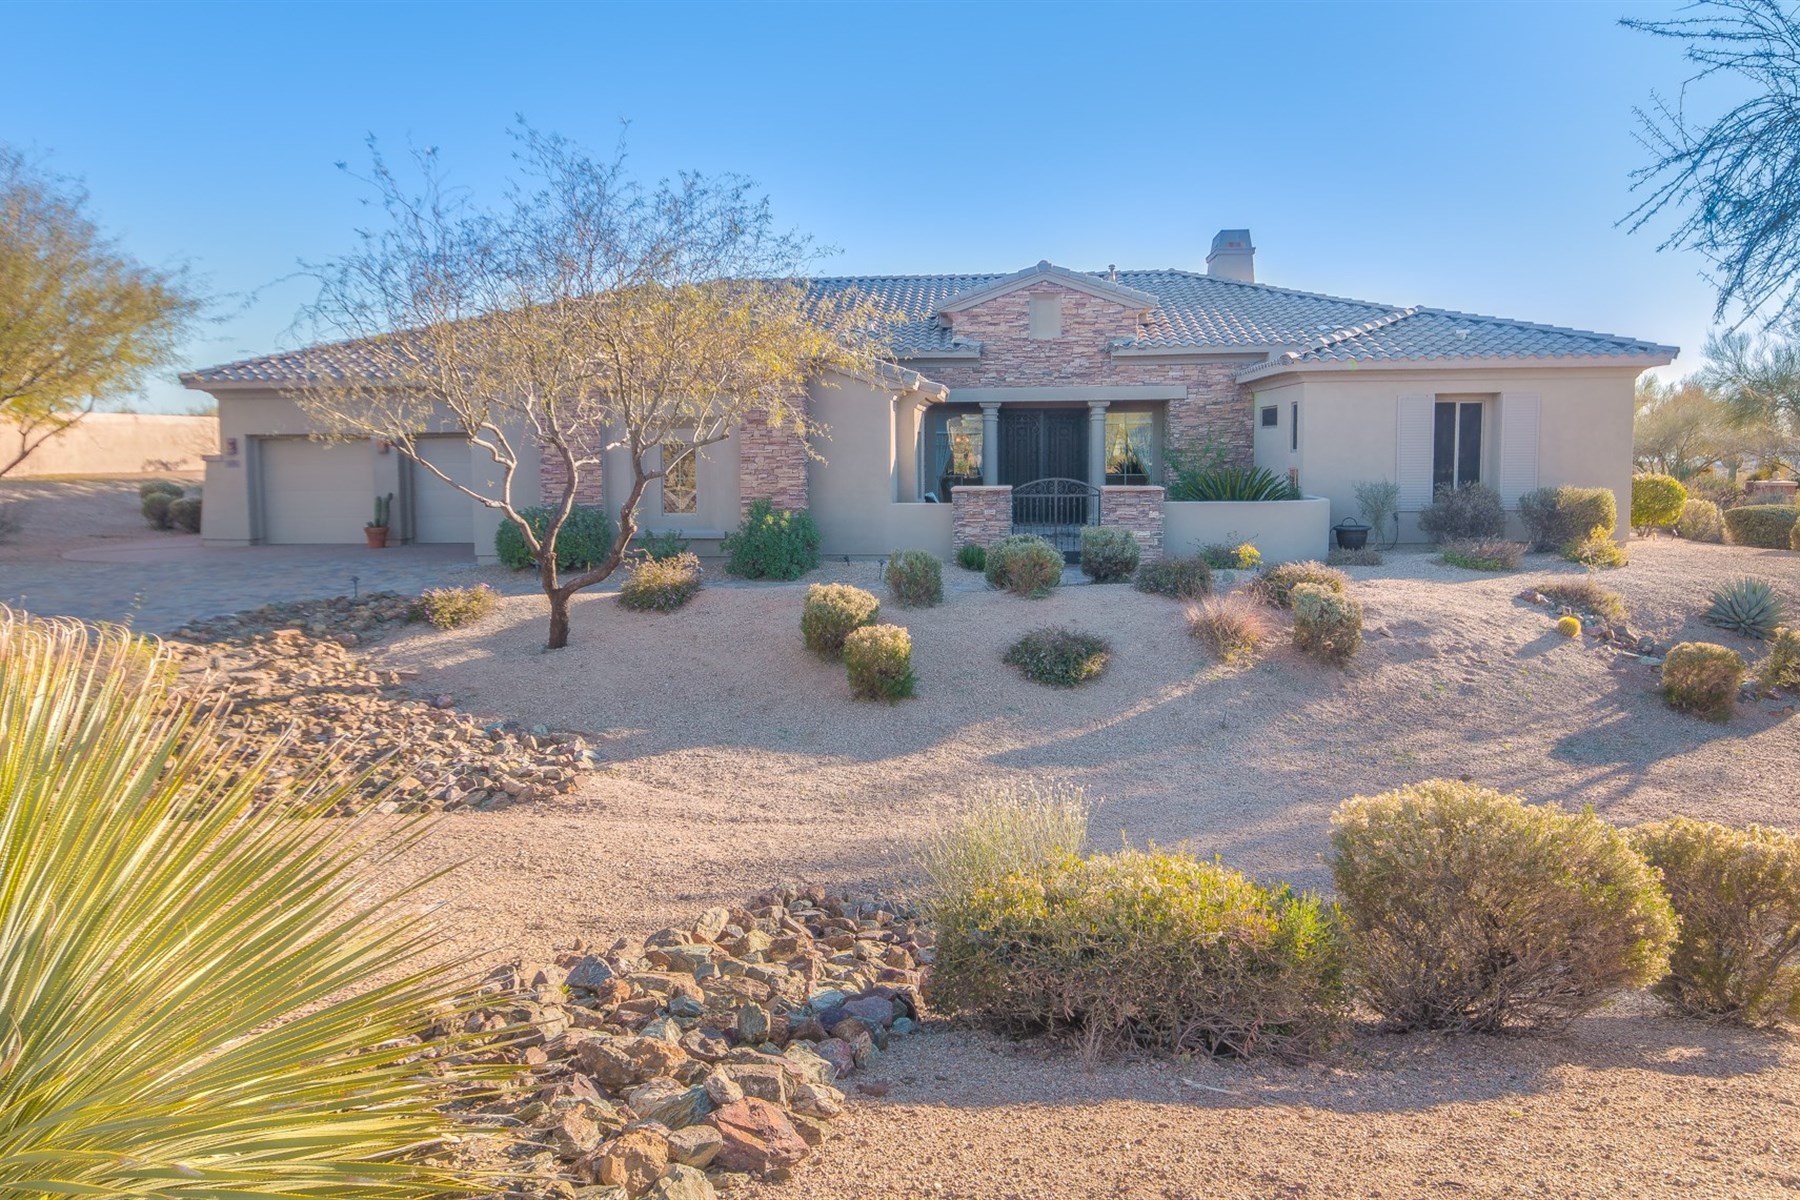 Maison unifamiliale pour l Vente à Stunning home is intimately nestled in the magnificent high Sonoran desert scape 9705 E Suncrest Rd Scottsdale, Arizona 85262 États-Unis